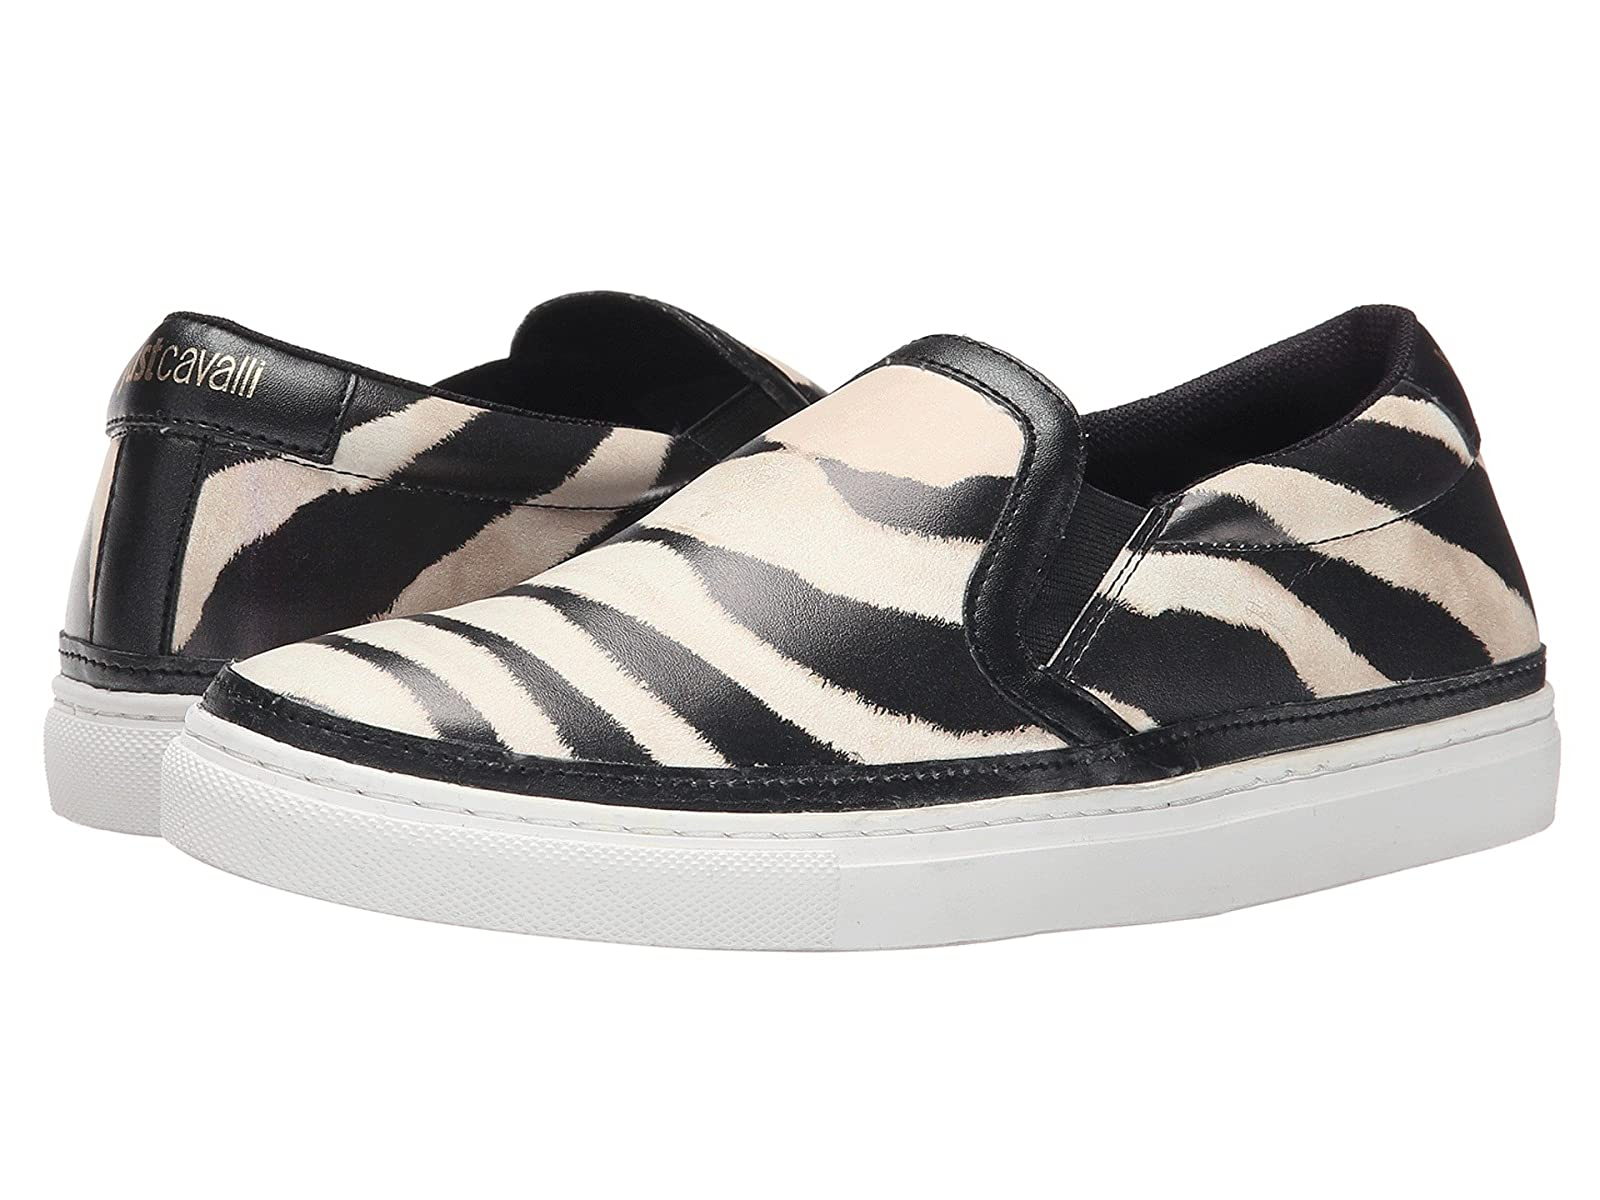 Just Cavalli Poetic Zebra Printed NappaCheap and distinctive eye-catching shoes